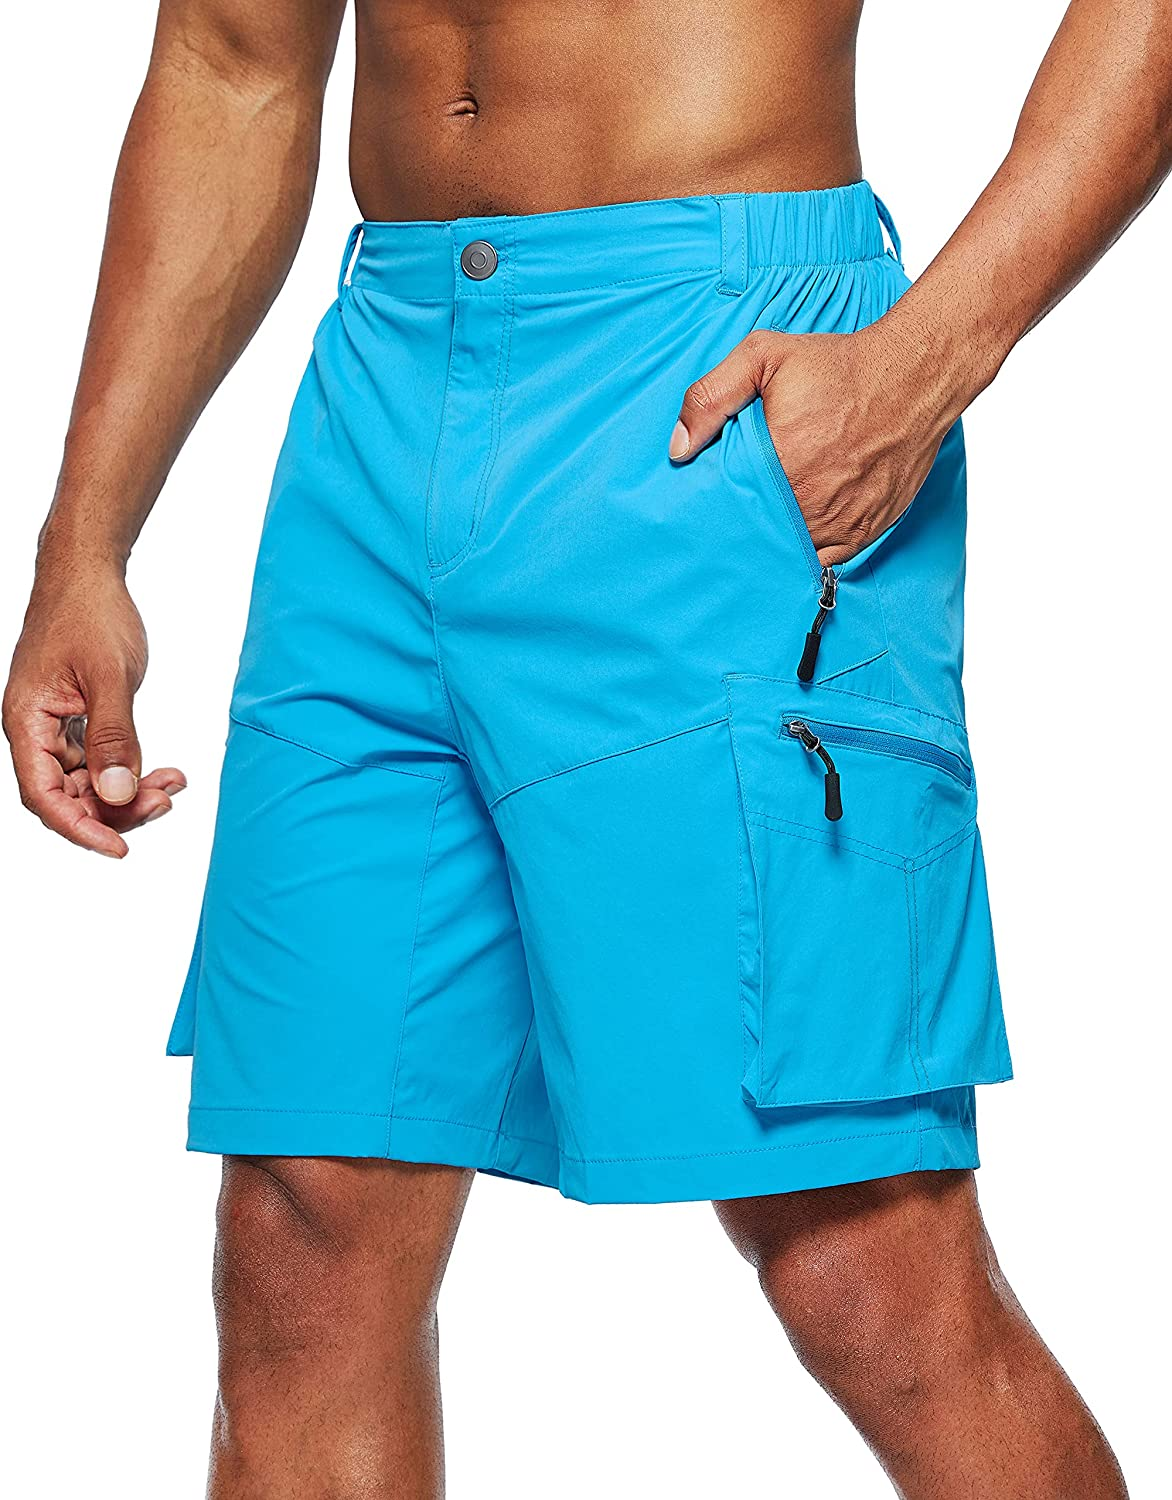 Quantity limited Pudolla Men's Hiking Cargo Limited time trial price Shorts Dry Outdoor Short Quick Travel